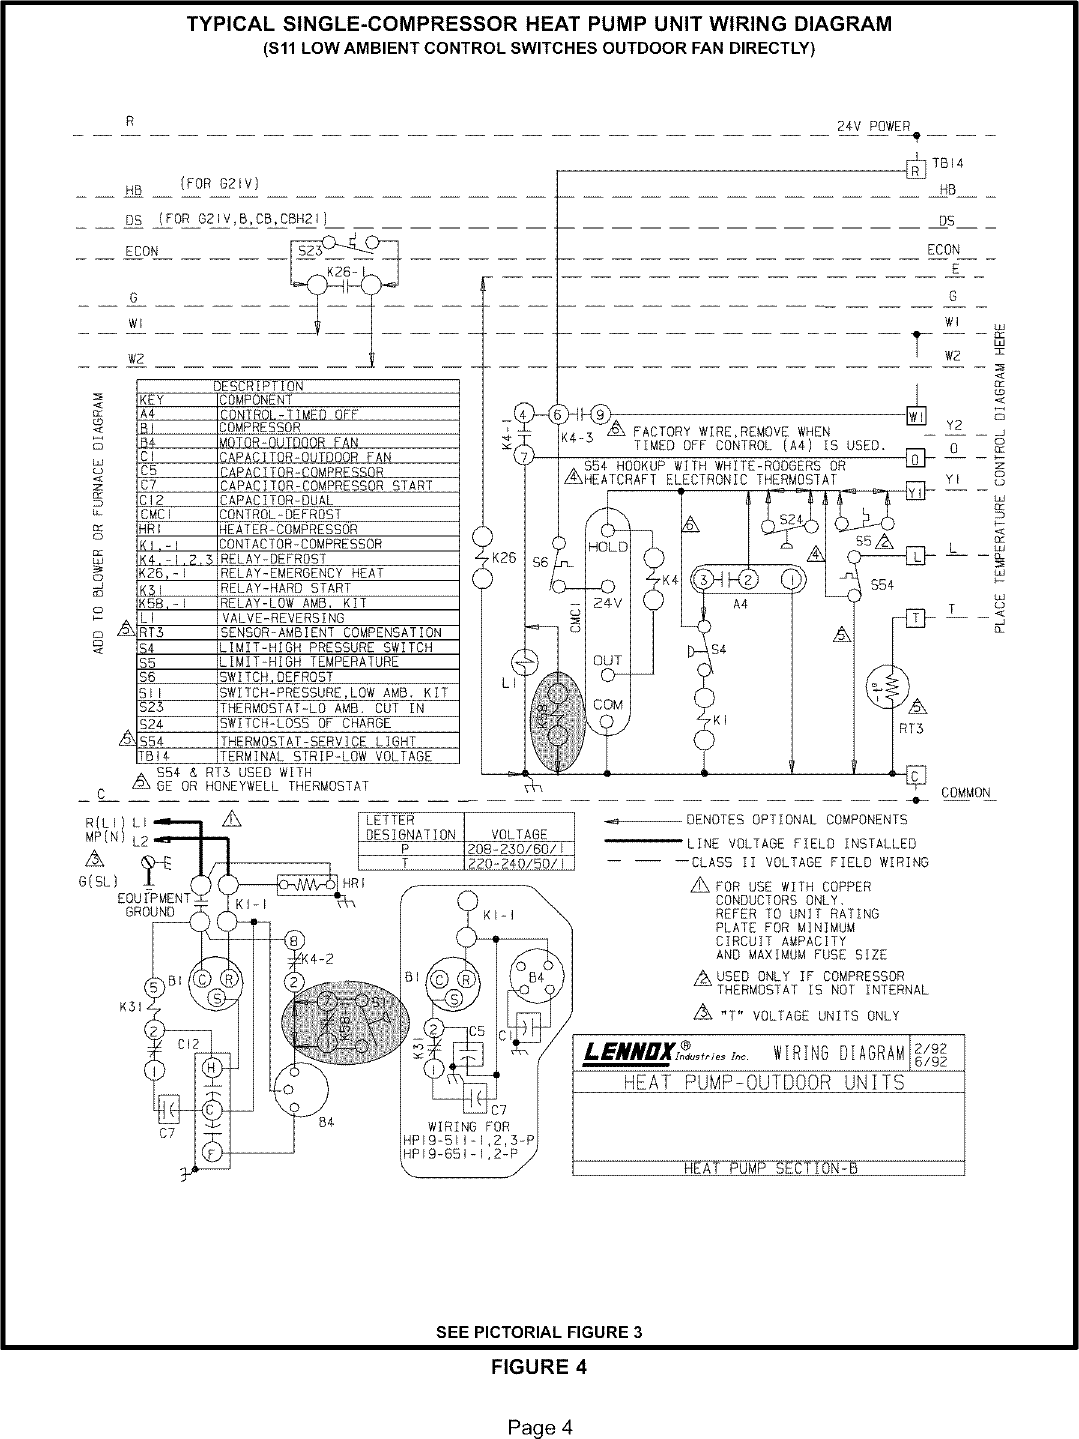 Lennox Controls And Hvac Accessories Manual L0806303 Drawing Key Page 4 Of 12